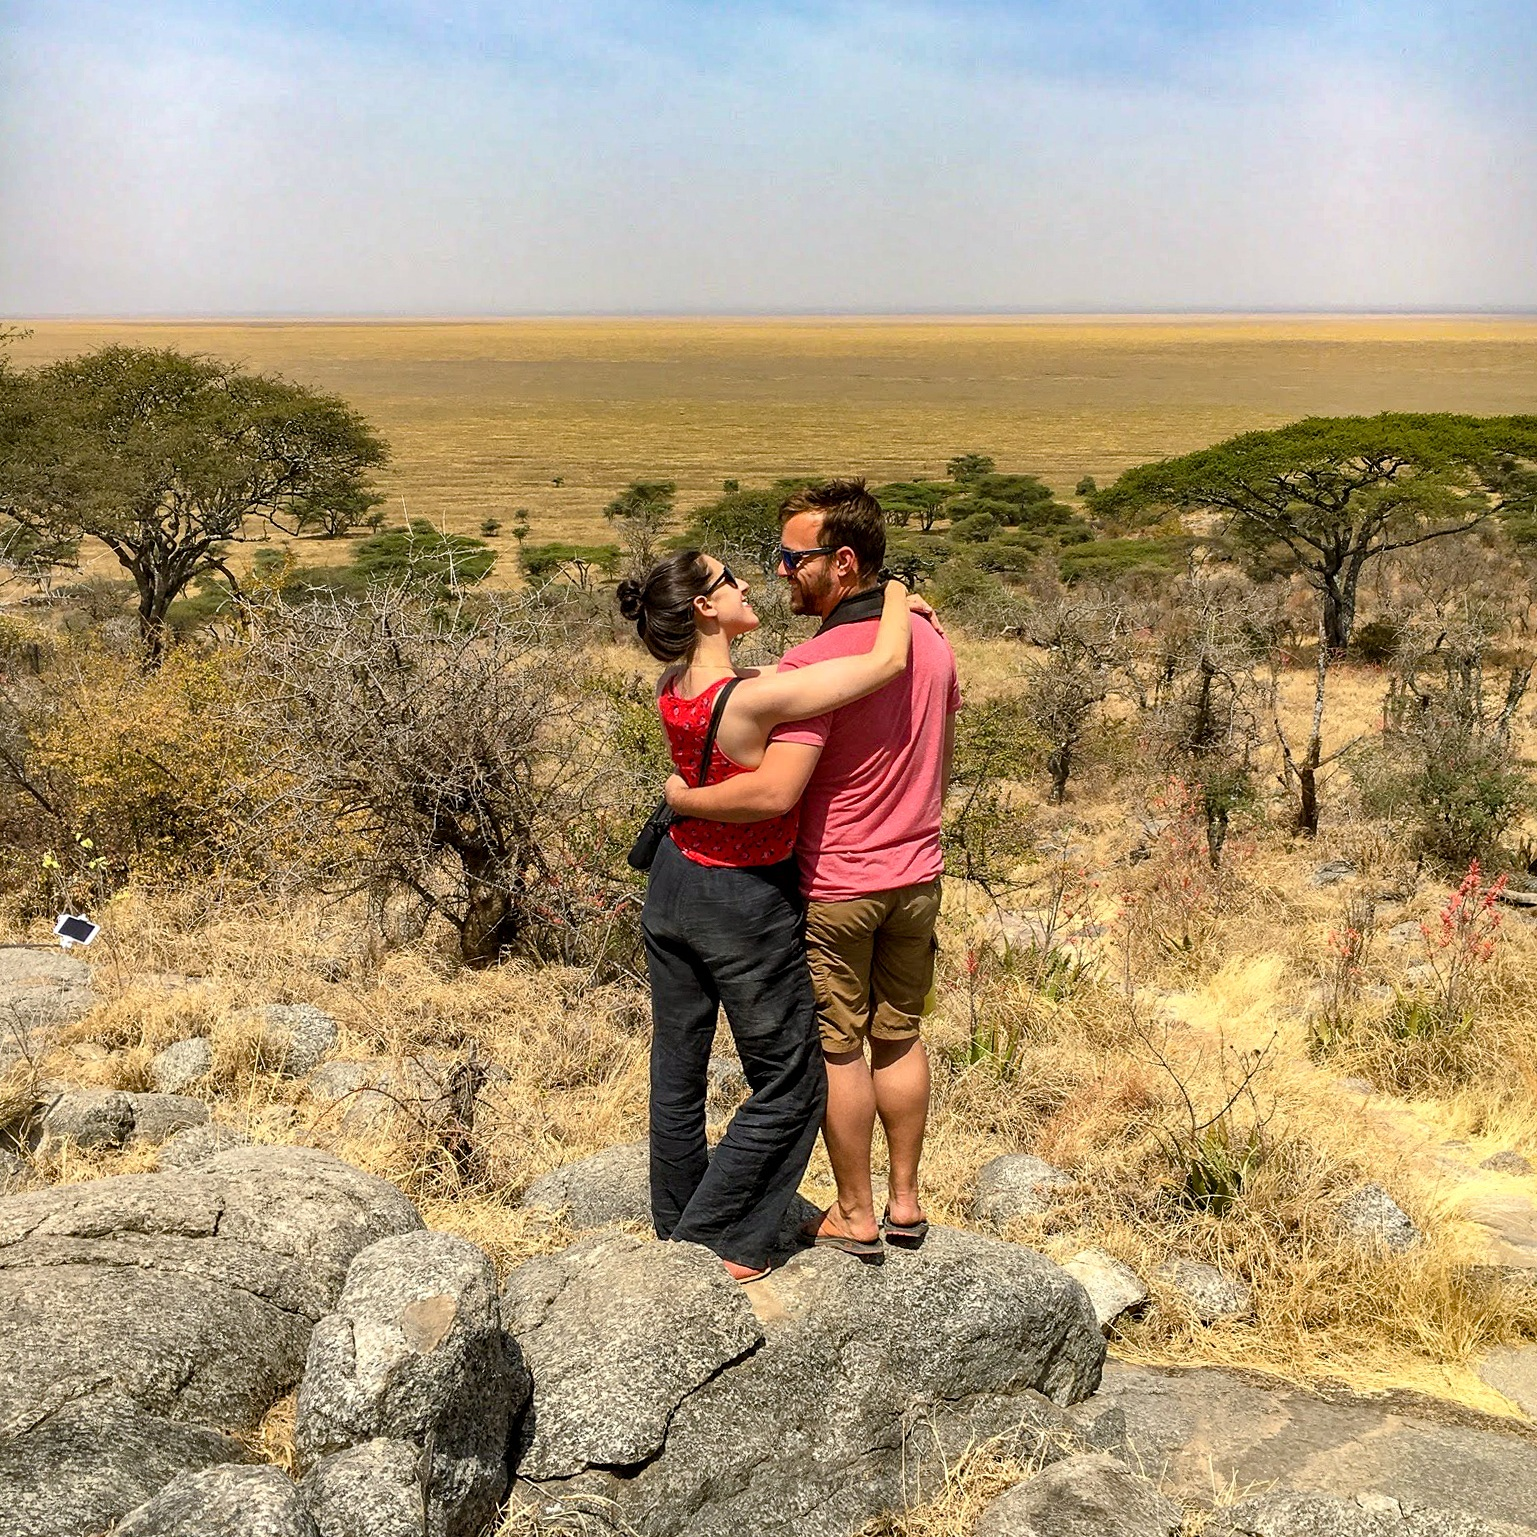 On safari in Tanzania, where we volunteered for 6 months